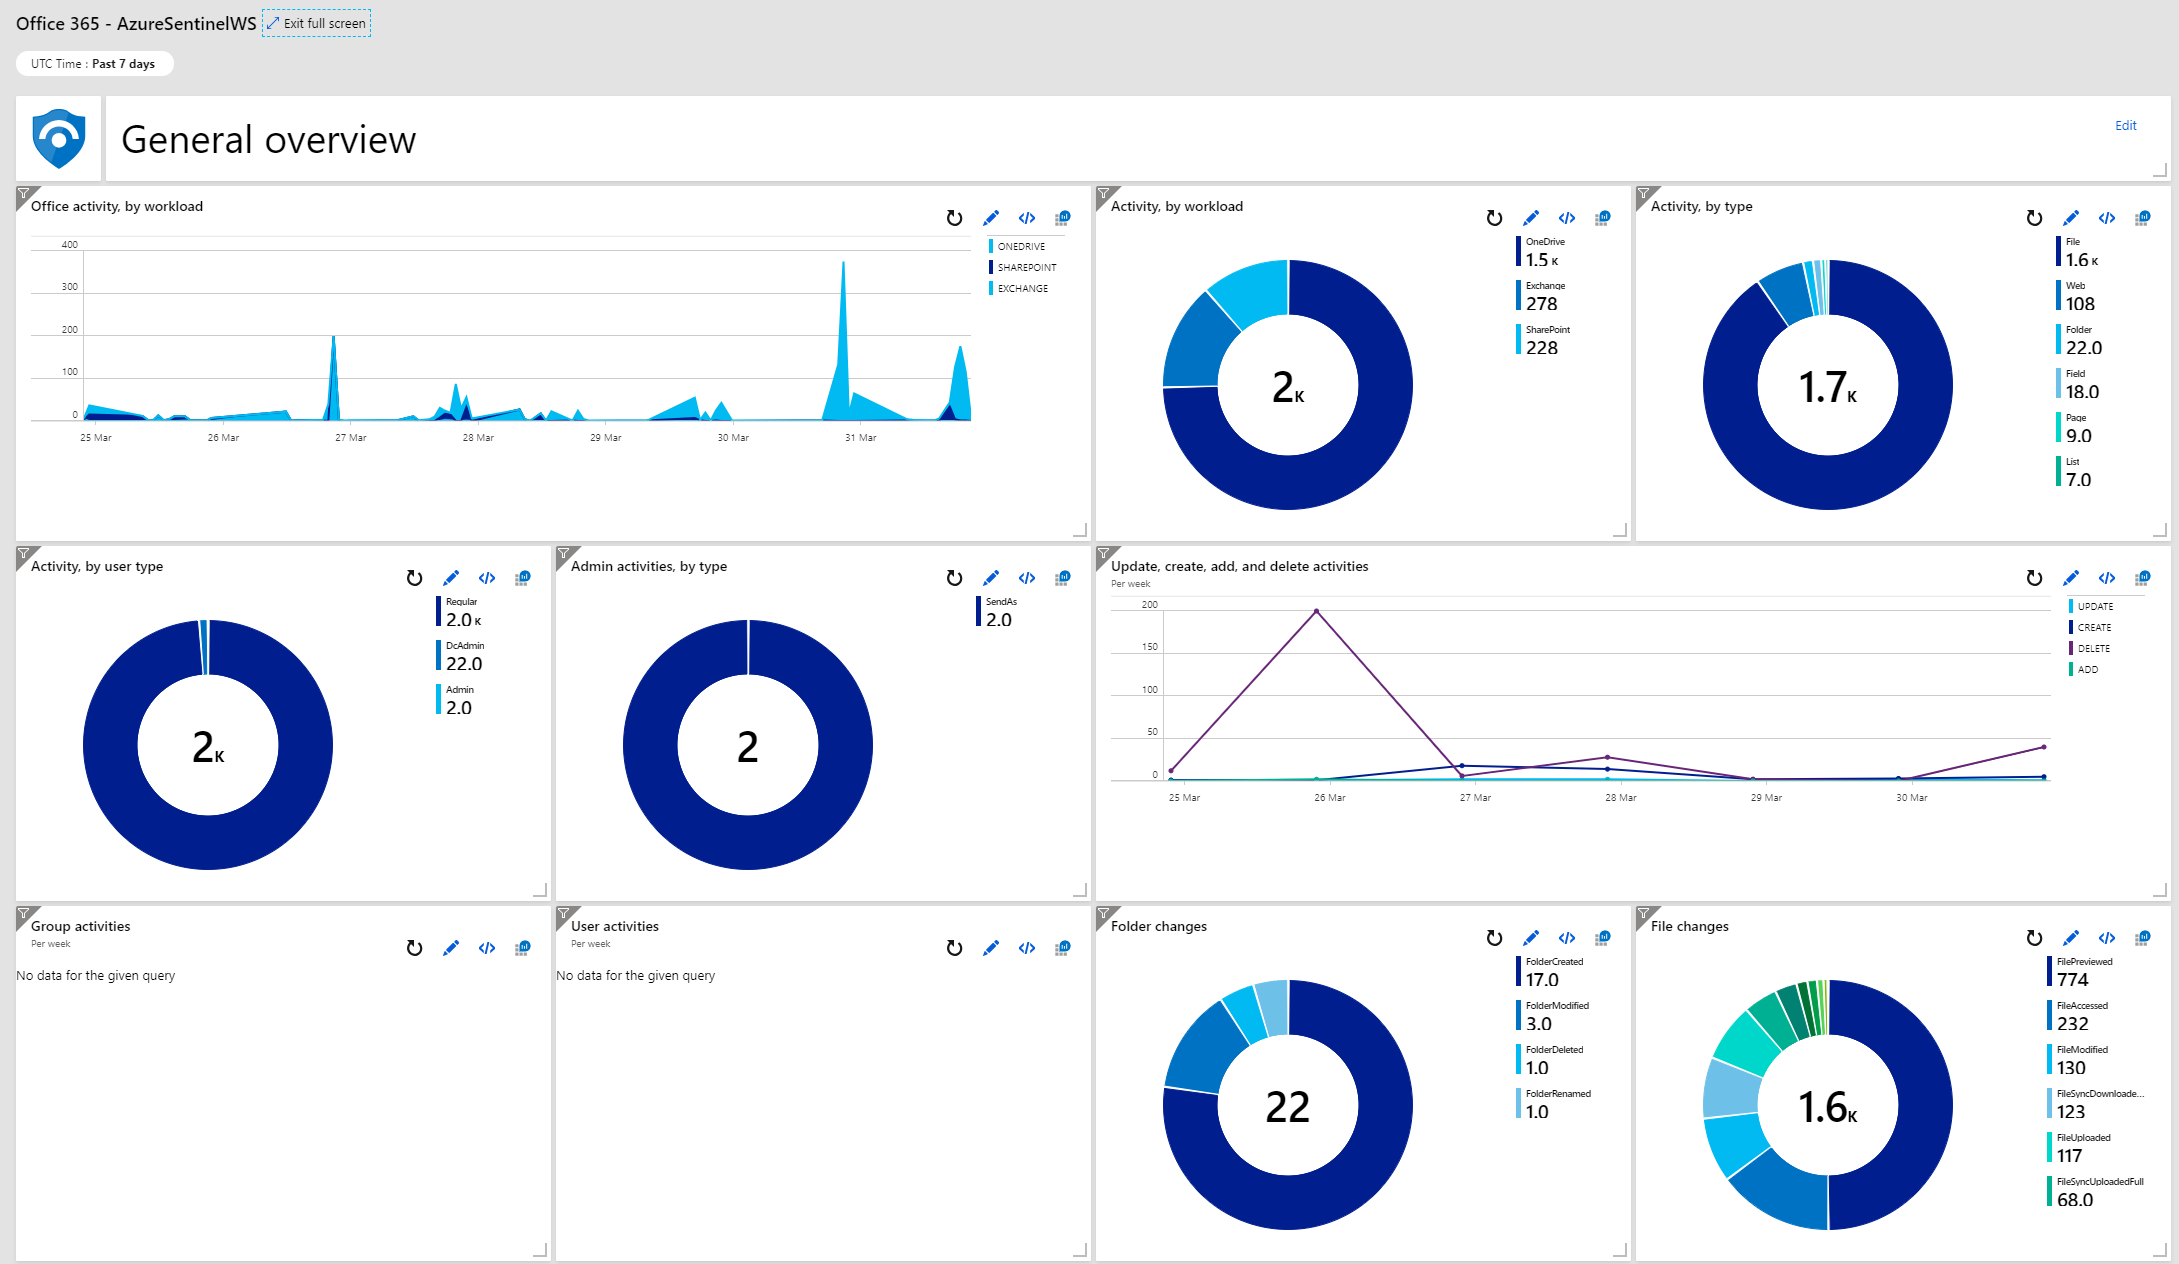 Office 365 General Overview